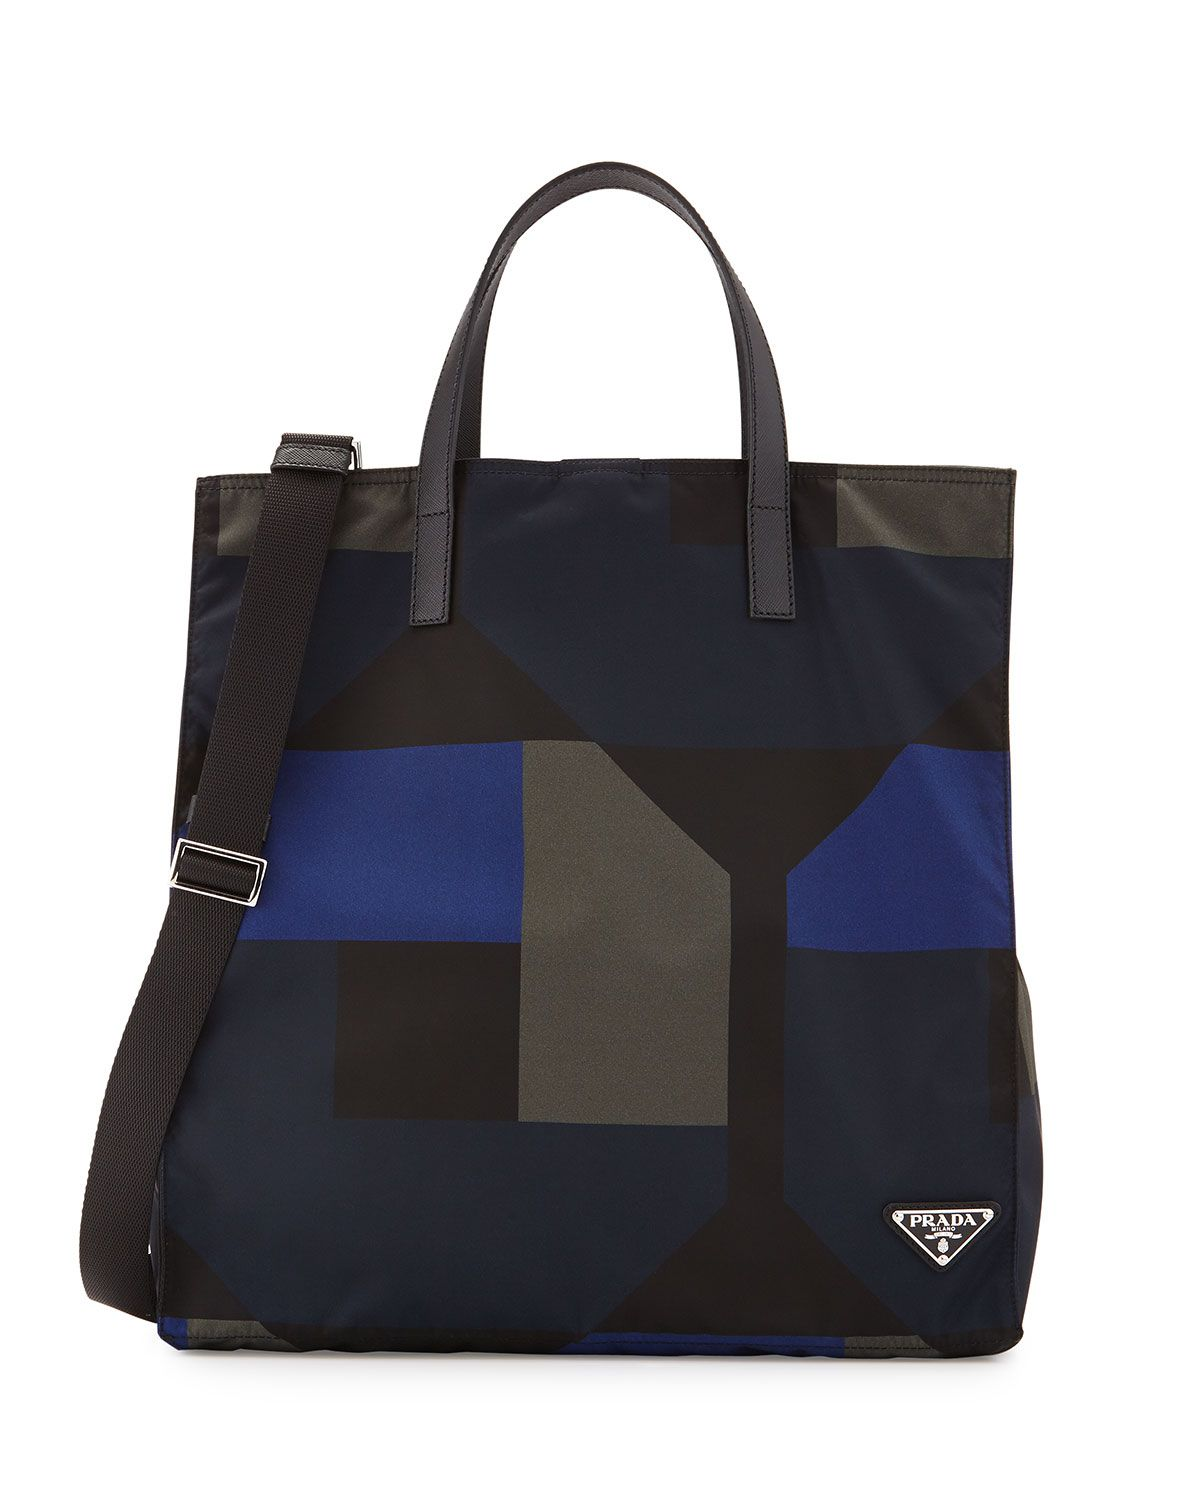 a72e5d91906a15 Men's Printed Nylon Tote Bag Black/Blue | *Neiman Marcus* | Nylon ...